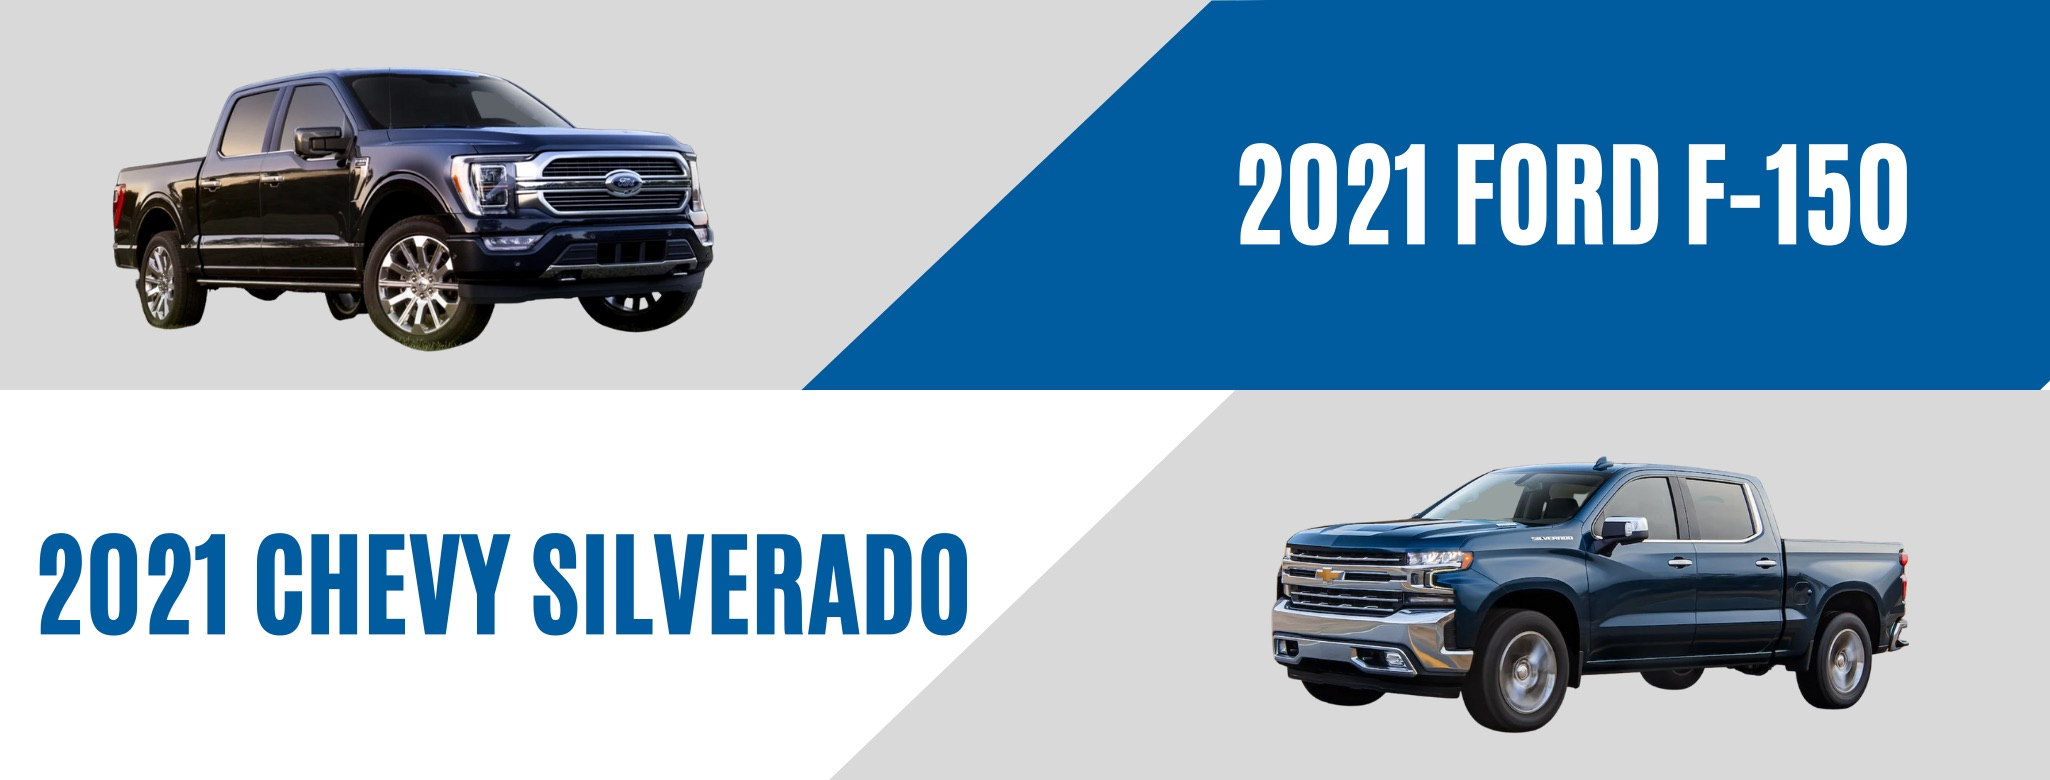 A blue 2021 Ford F-150 and a blue 2021 Chevrolet Silverado being compared with the text of the brand names